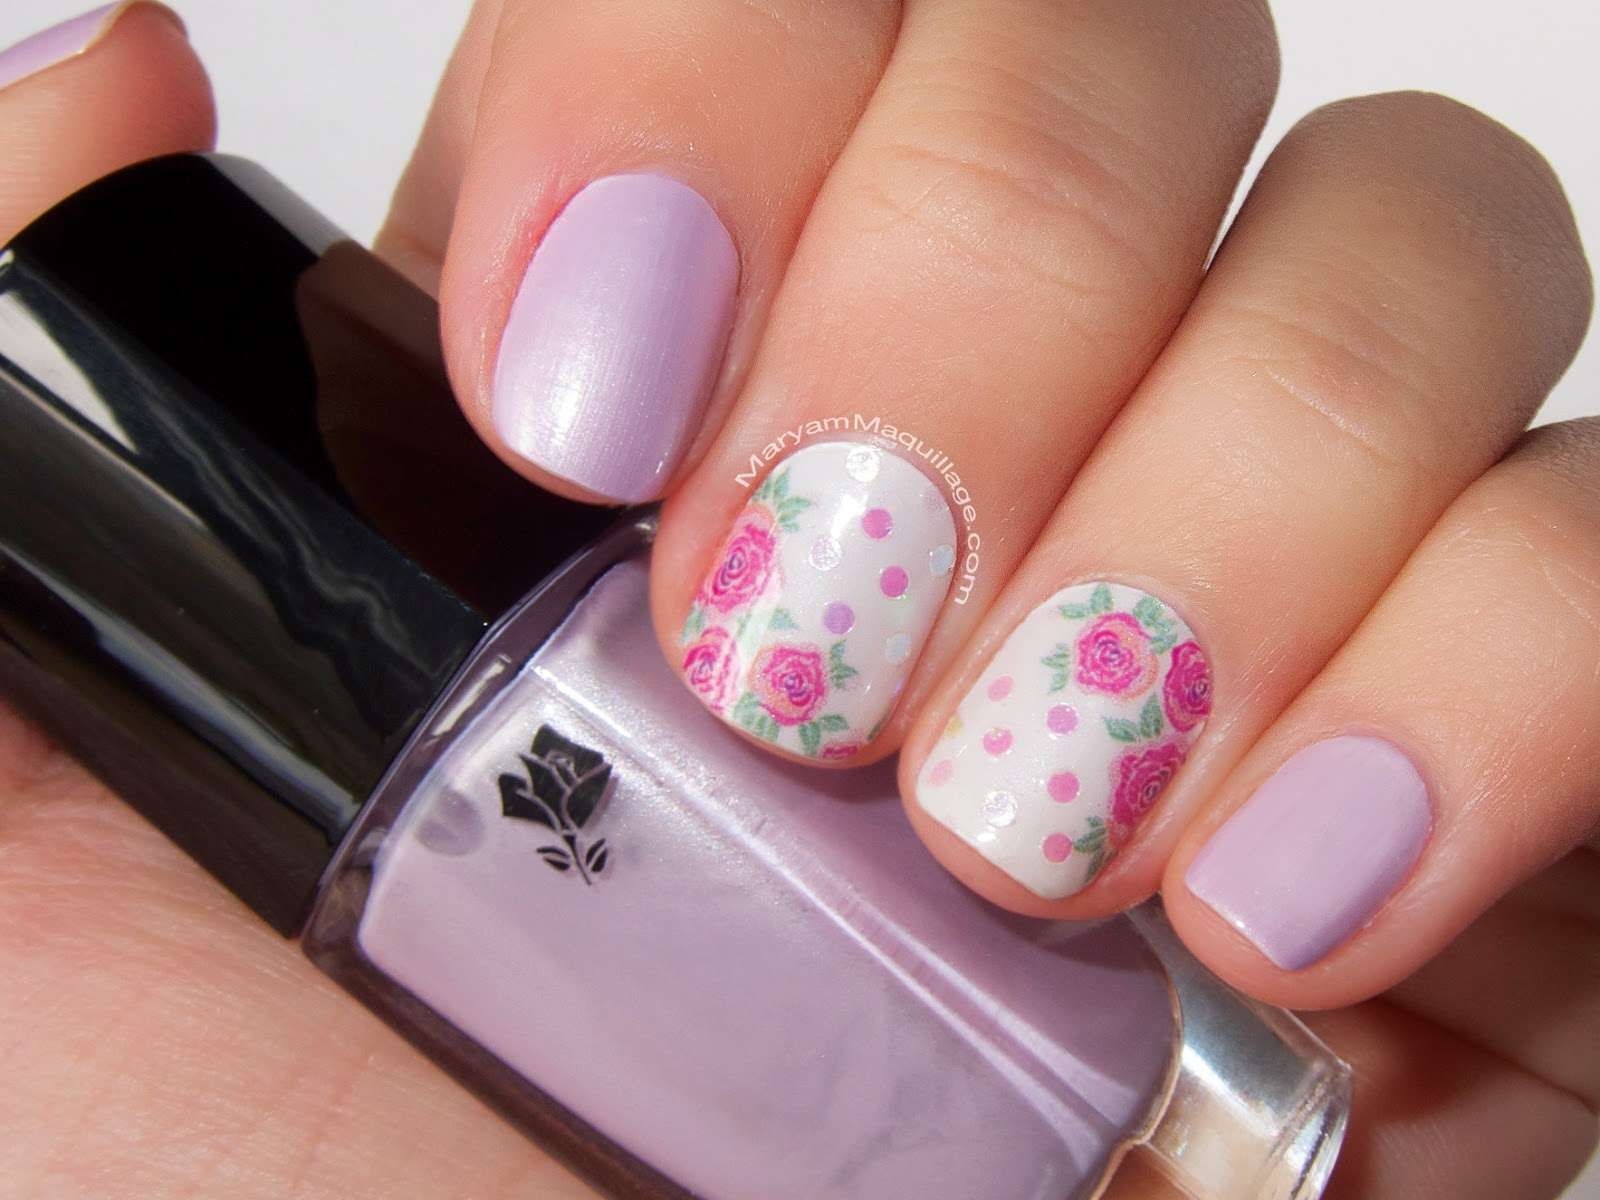 Maryam maquillage spring beauty trend pastel nailart sneak peek of next post look inspired by my minty fresh nail art prinsesfo Choice Image